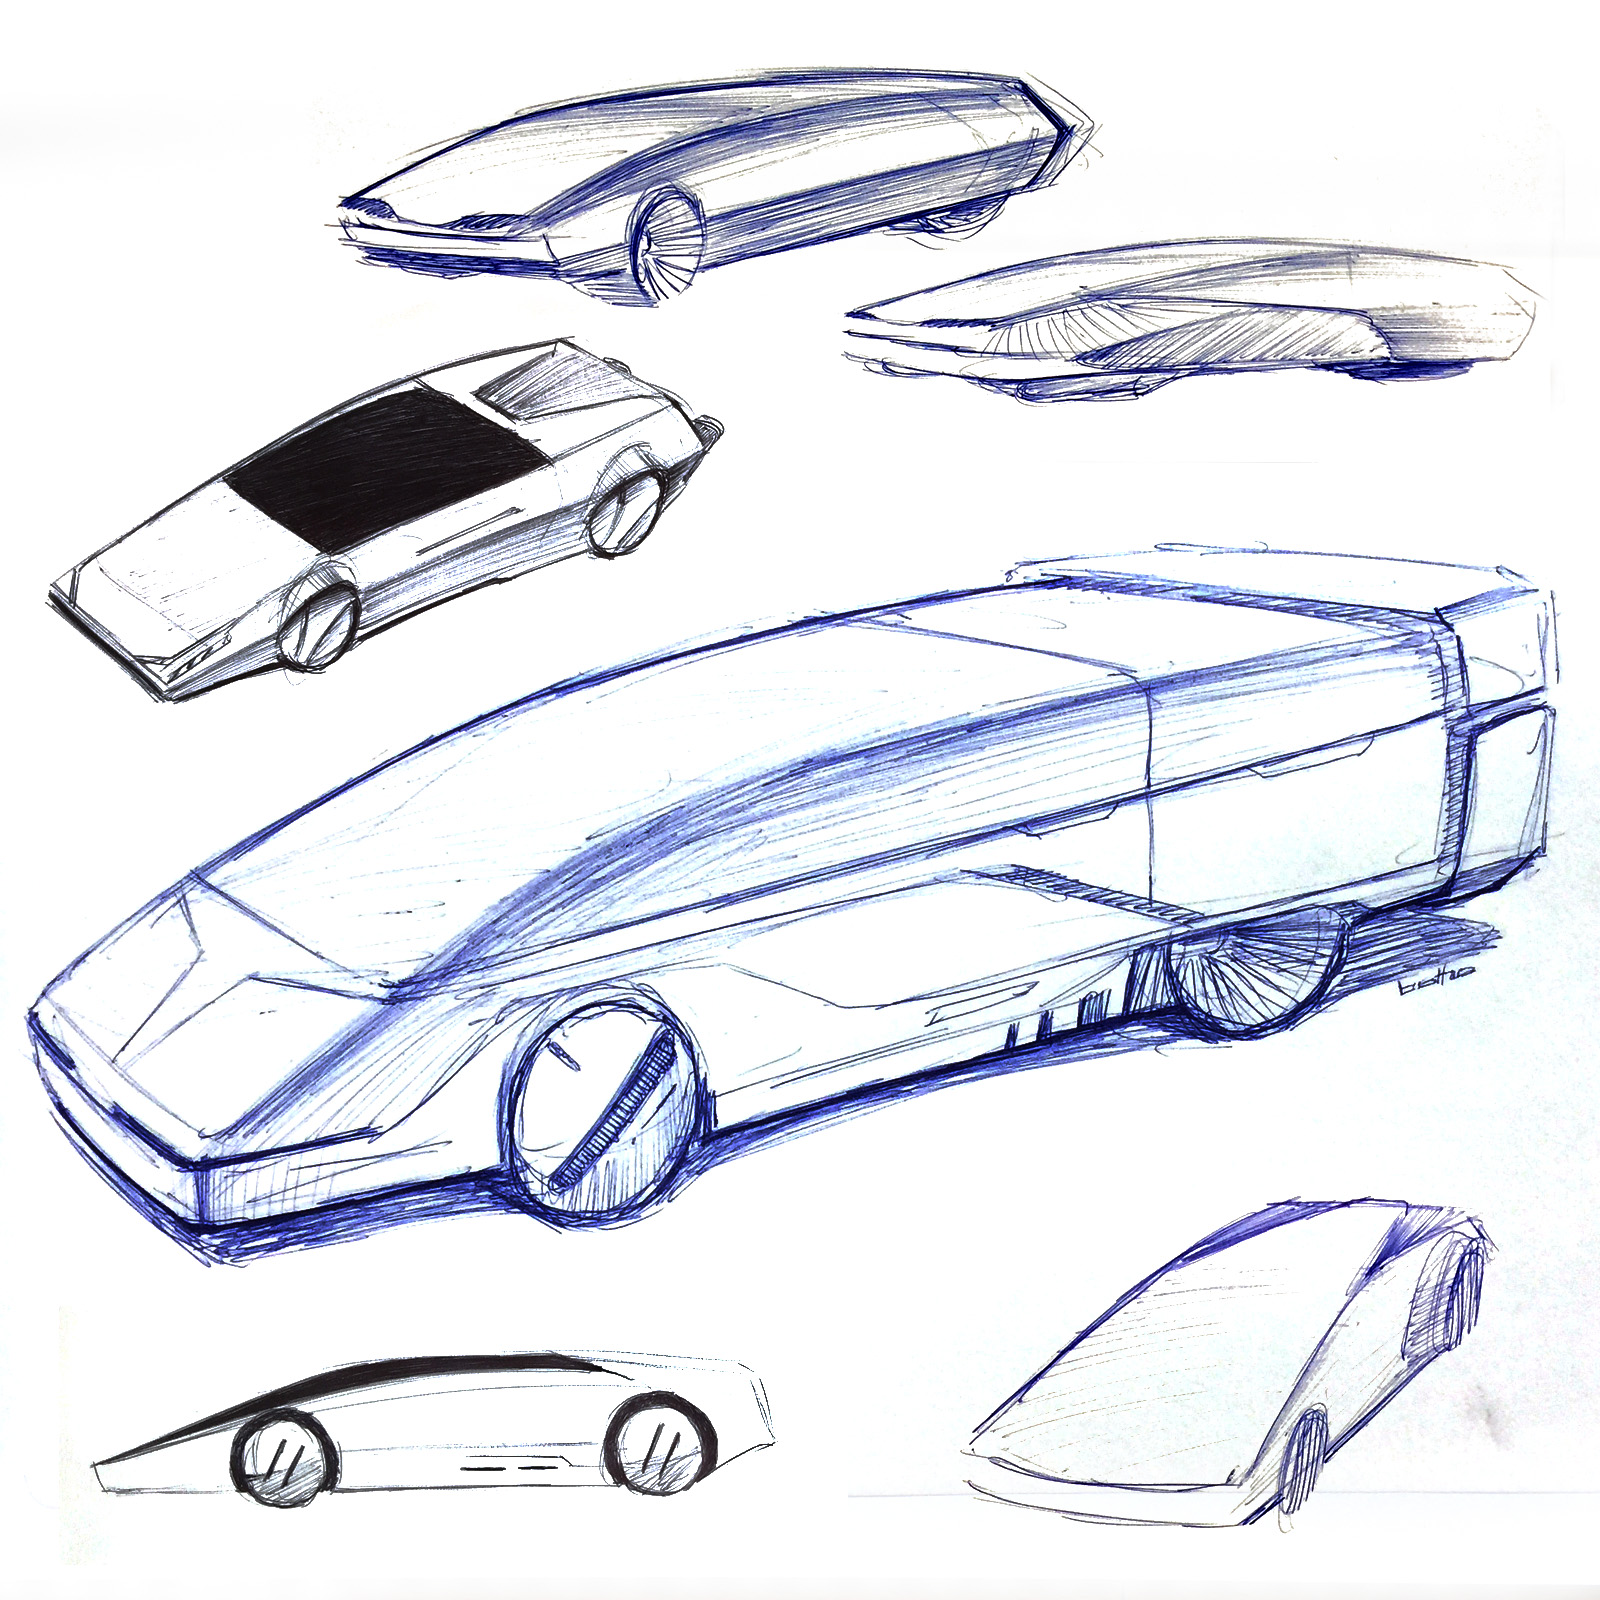 bothodesign-felix-haas-vehicle-automotive-concept-IG_sketches_006